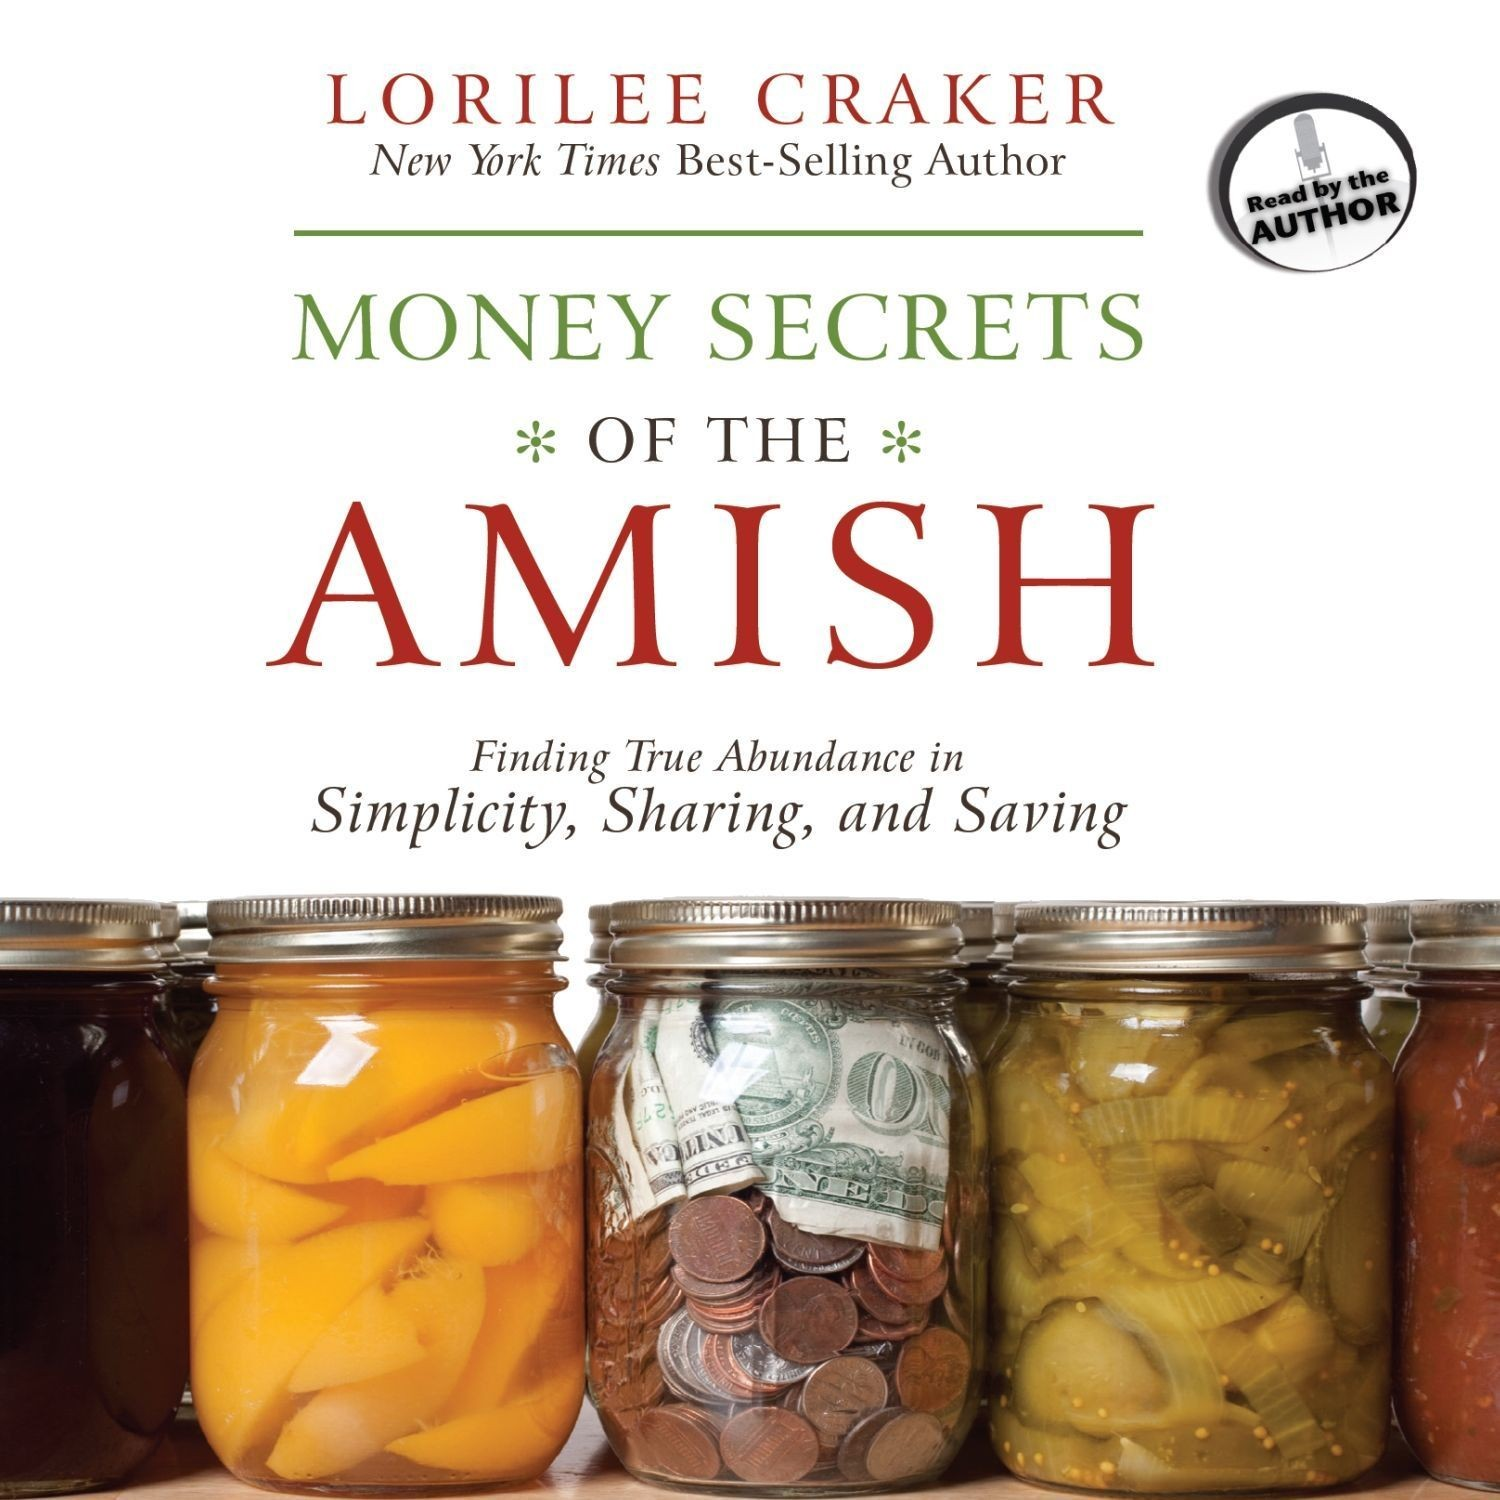 Printable Money Secrets of the Amish: Finding True Abundance in Simplicity, Sharing, and Saving Audiobook Cover Art